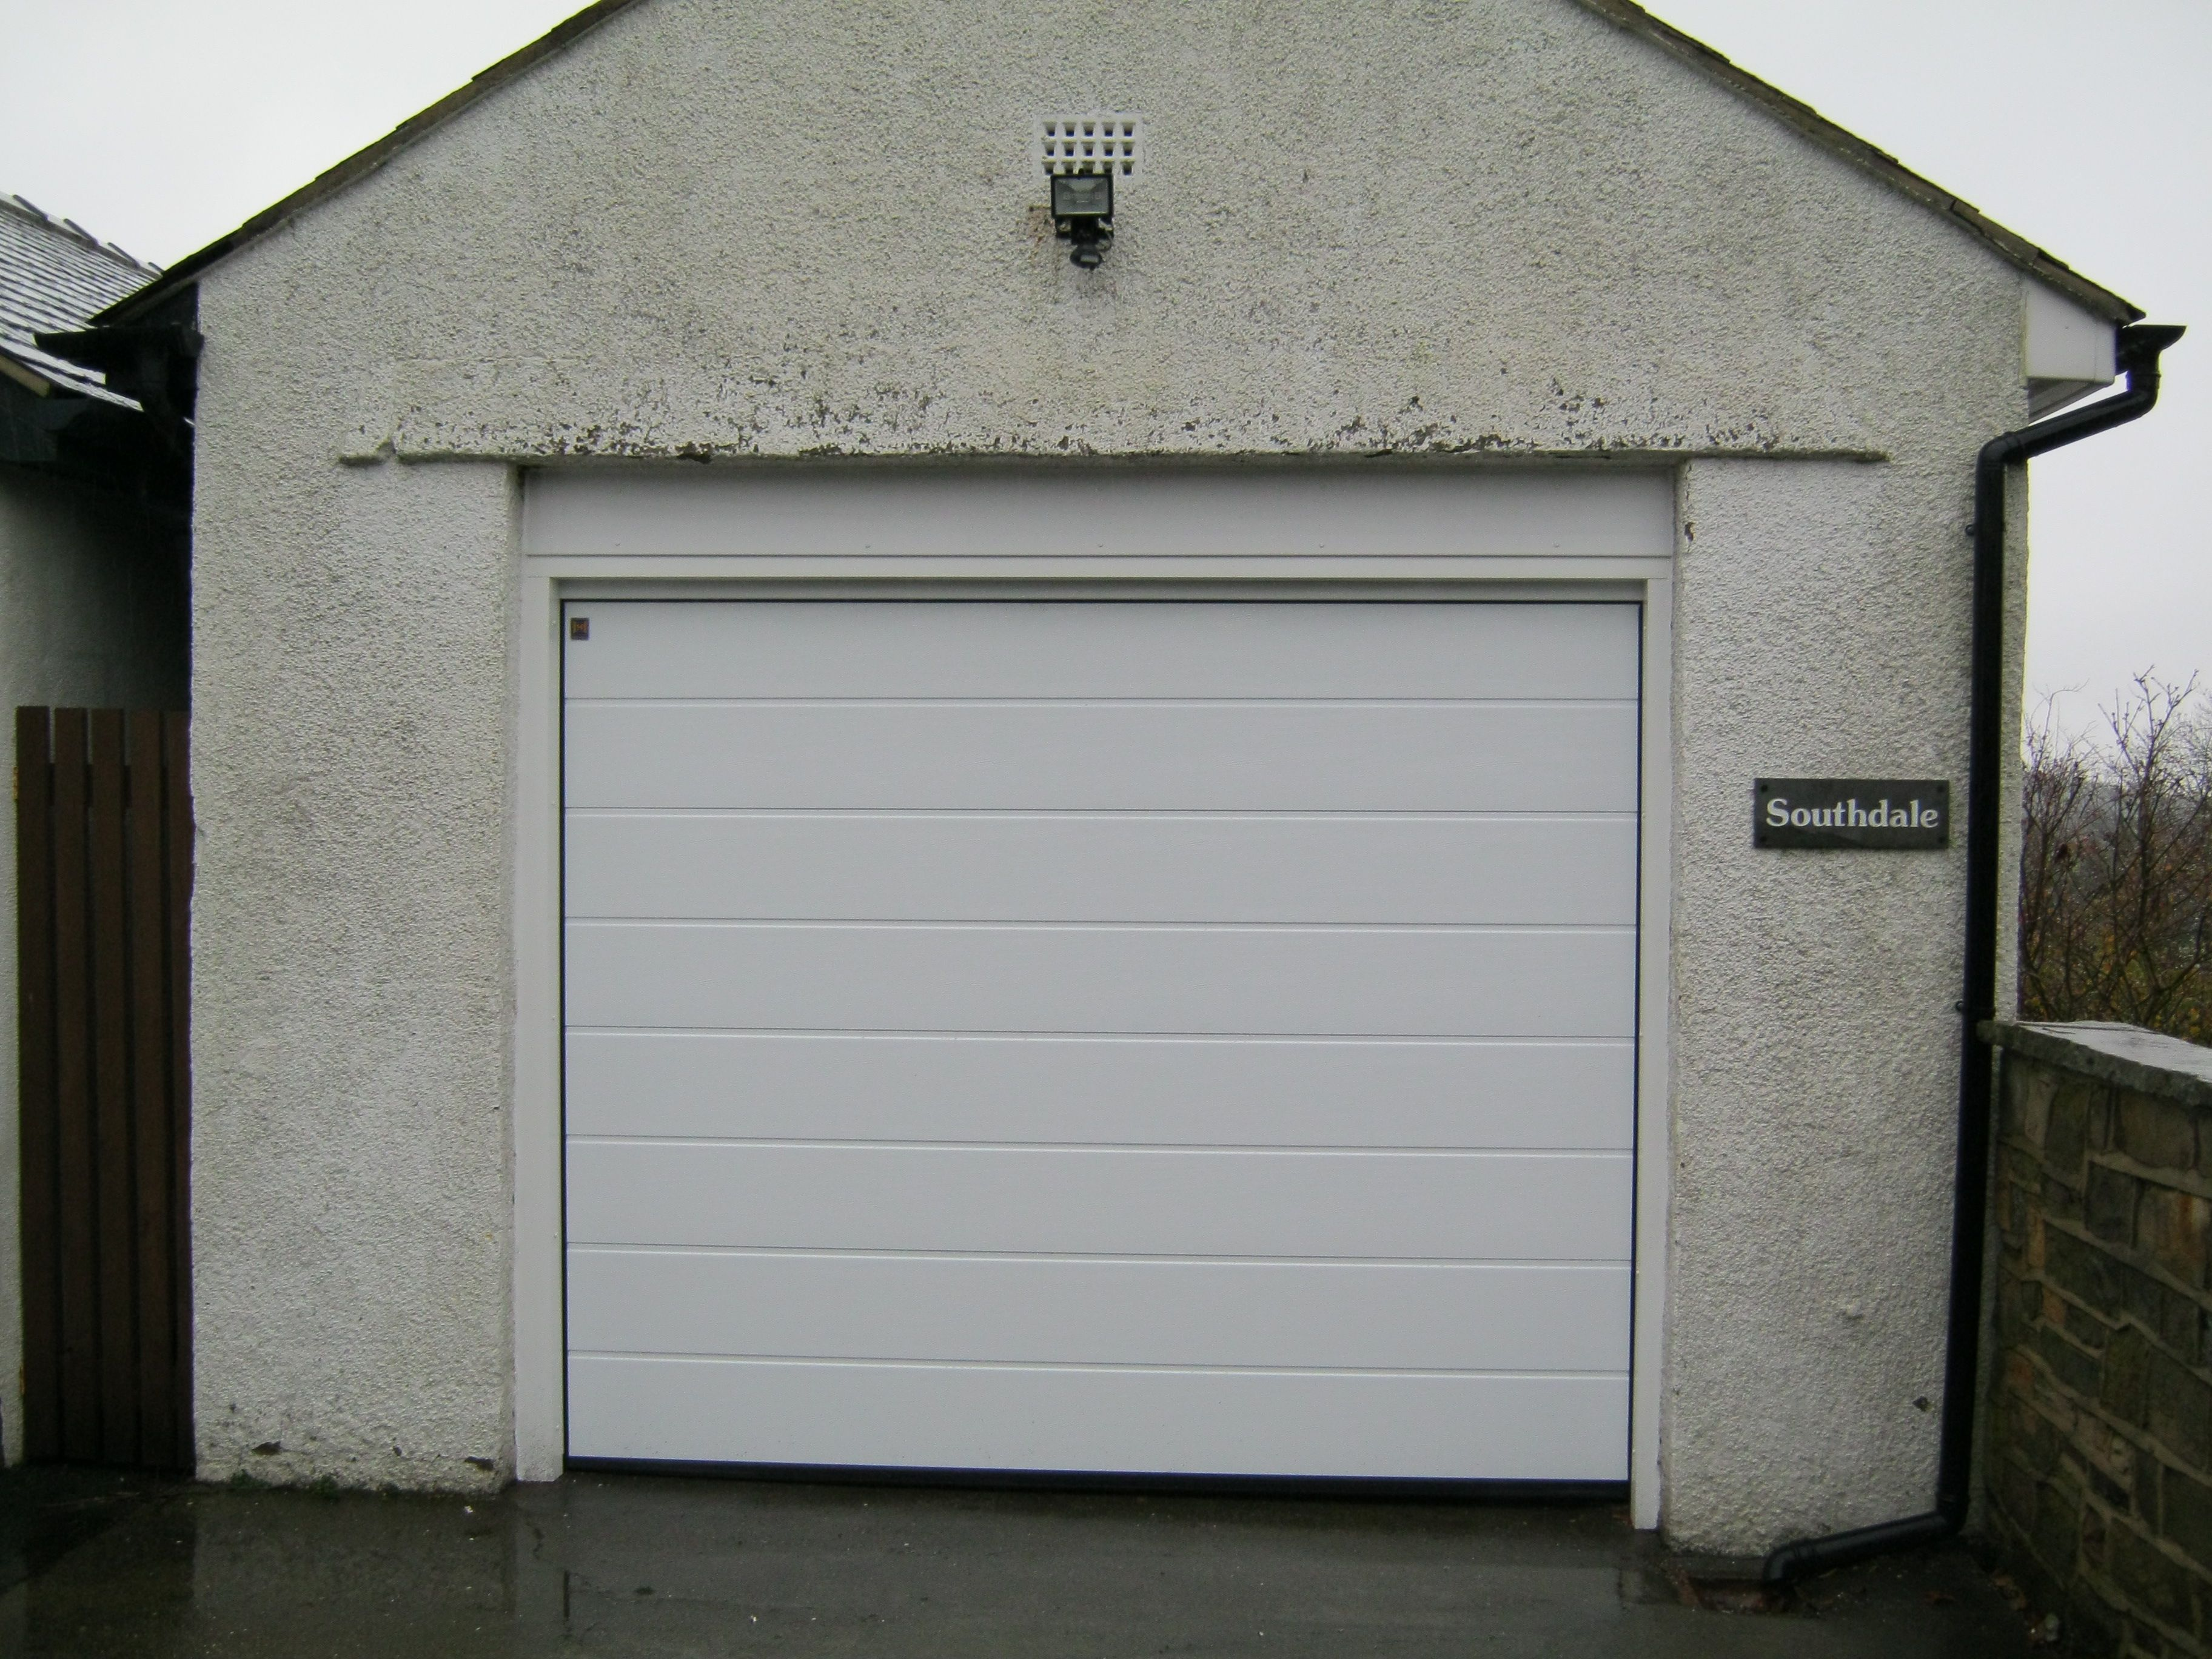 turned to seems have doors with in that door max insulation i good blog opener finished the out some blue garage decades it think looking for pretty diy and old are helped cold product